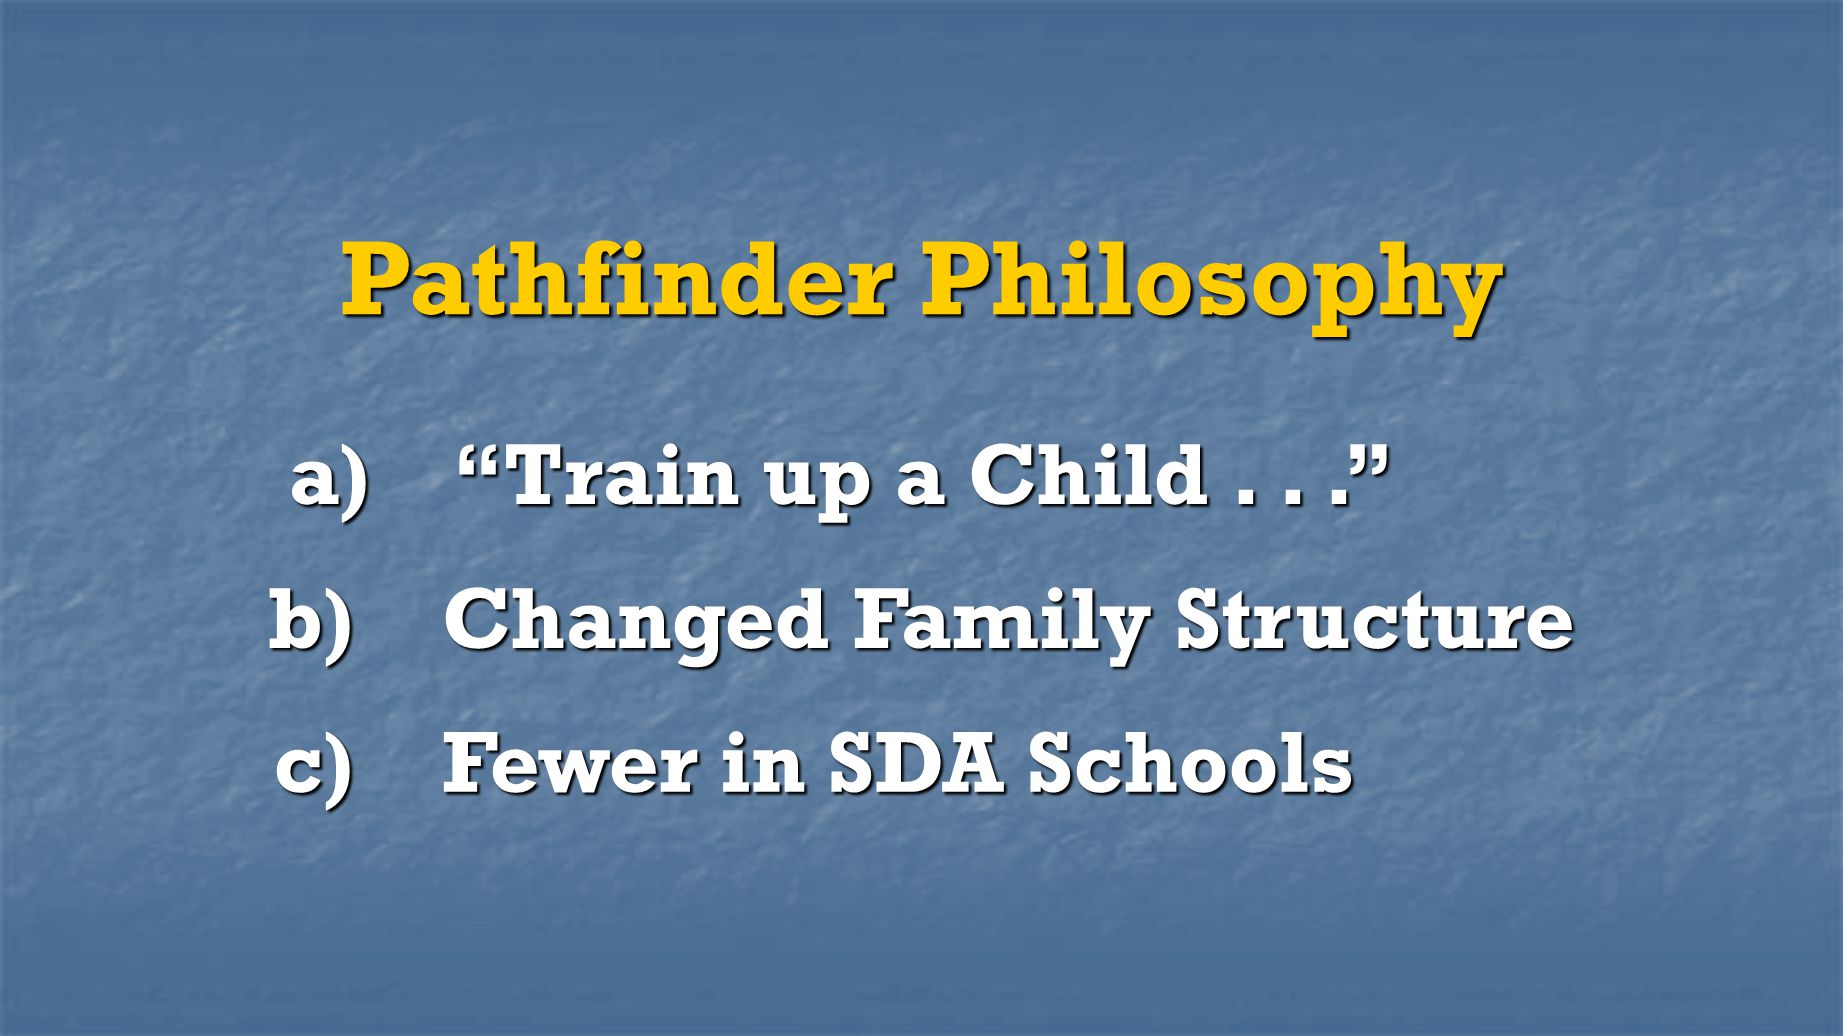 Pathfinder Philosophy b) Changed Family Structure